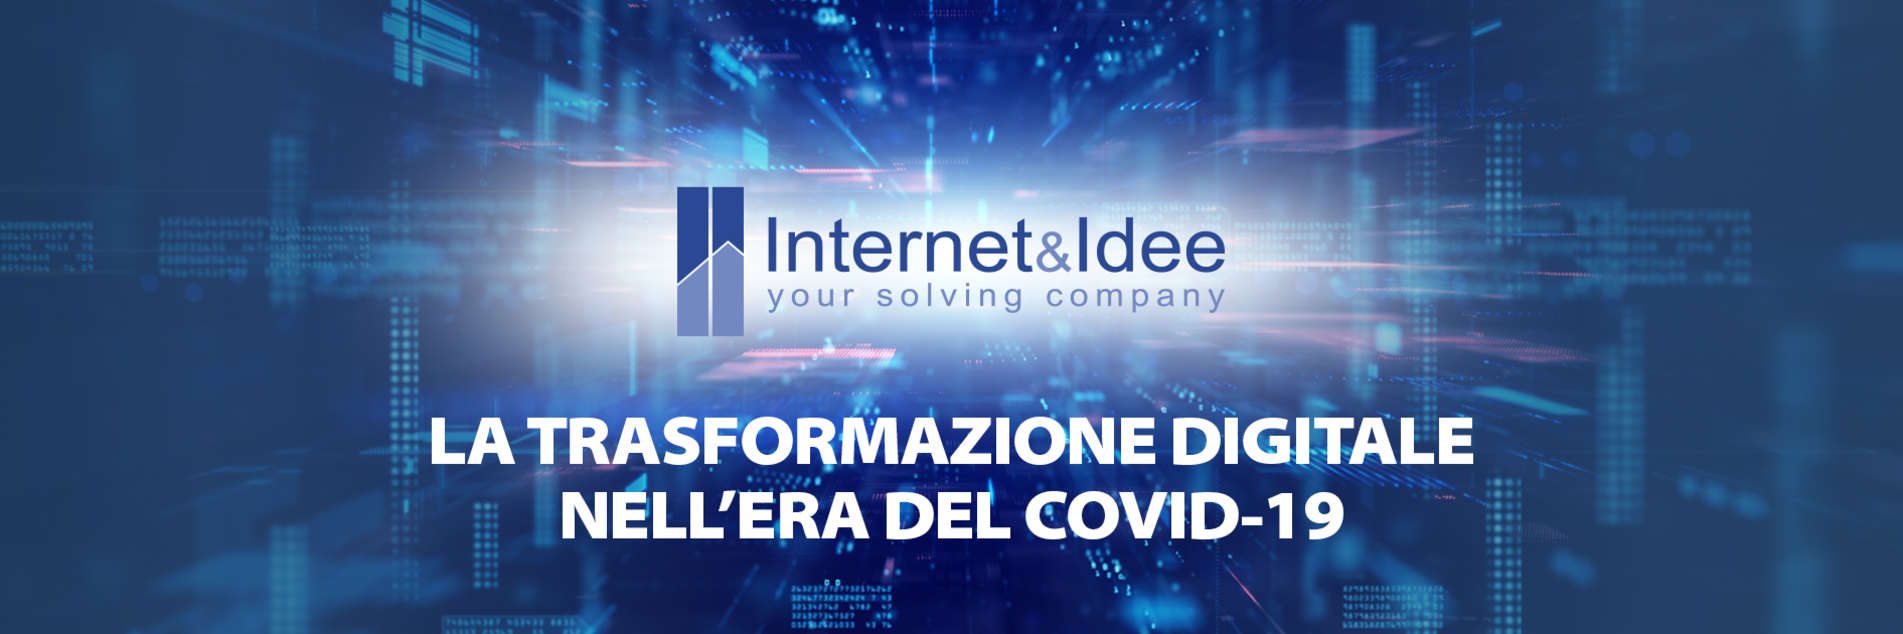 5 trends of Digital Transformation in the post Covid-19